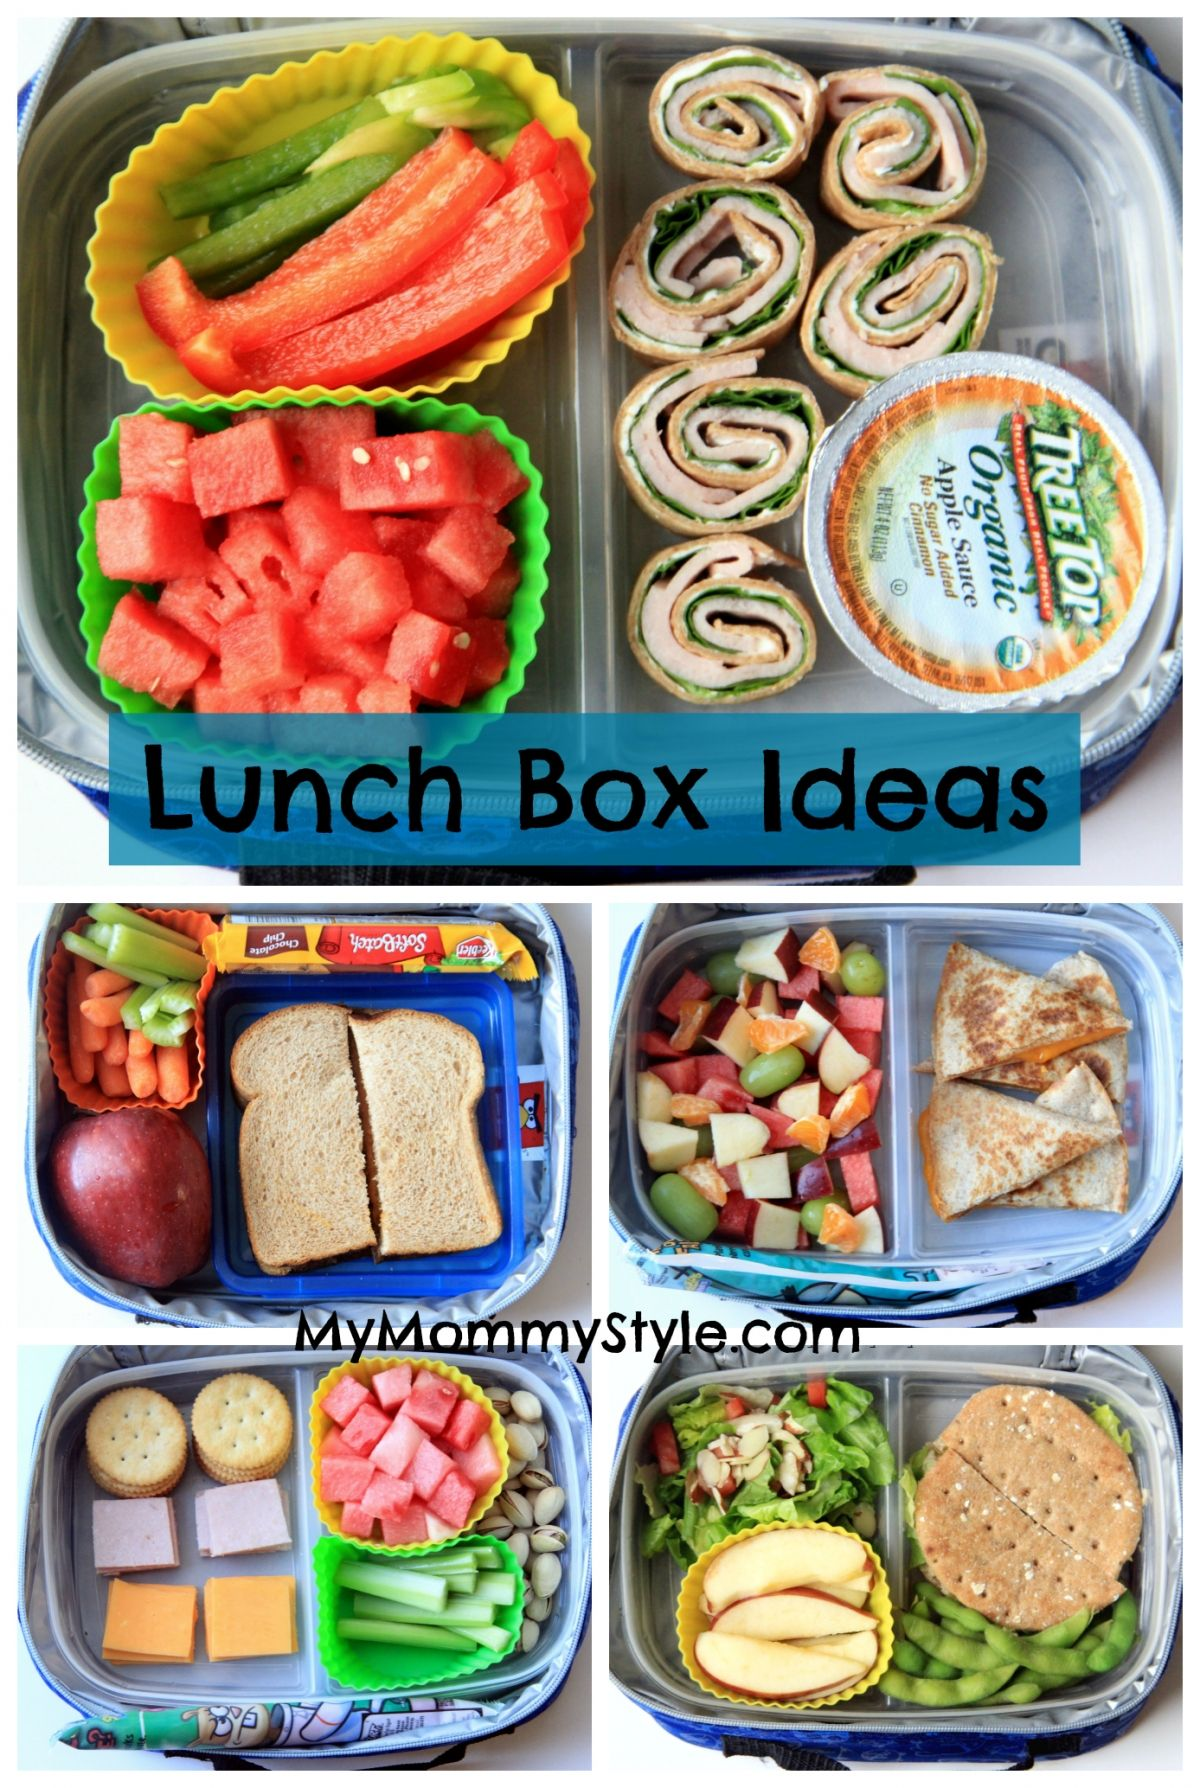 Clean Eating While Pregnant Healthy Lunch BoxesHealthy Lunches For KidsLunch Box IdeasKid